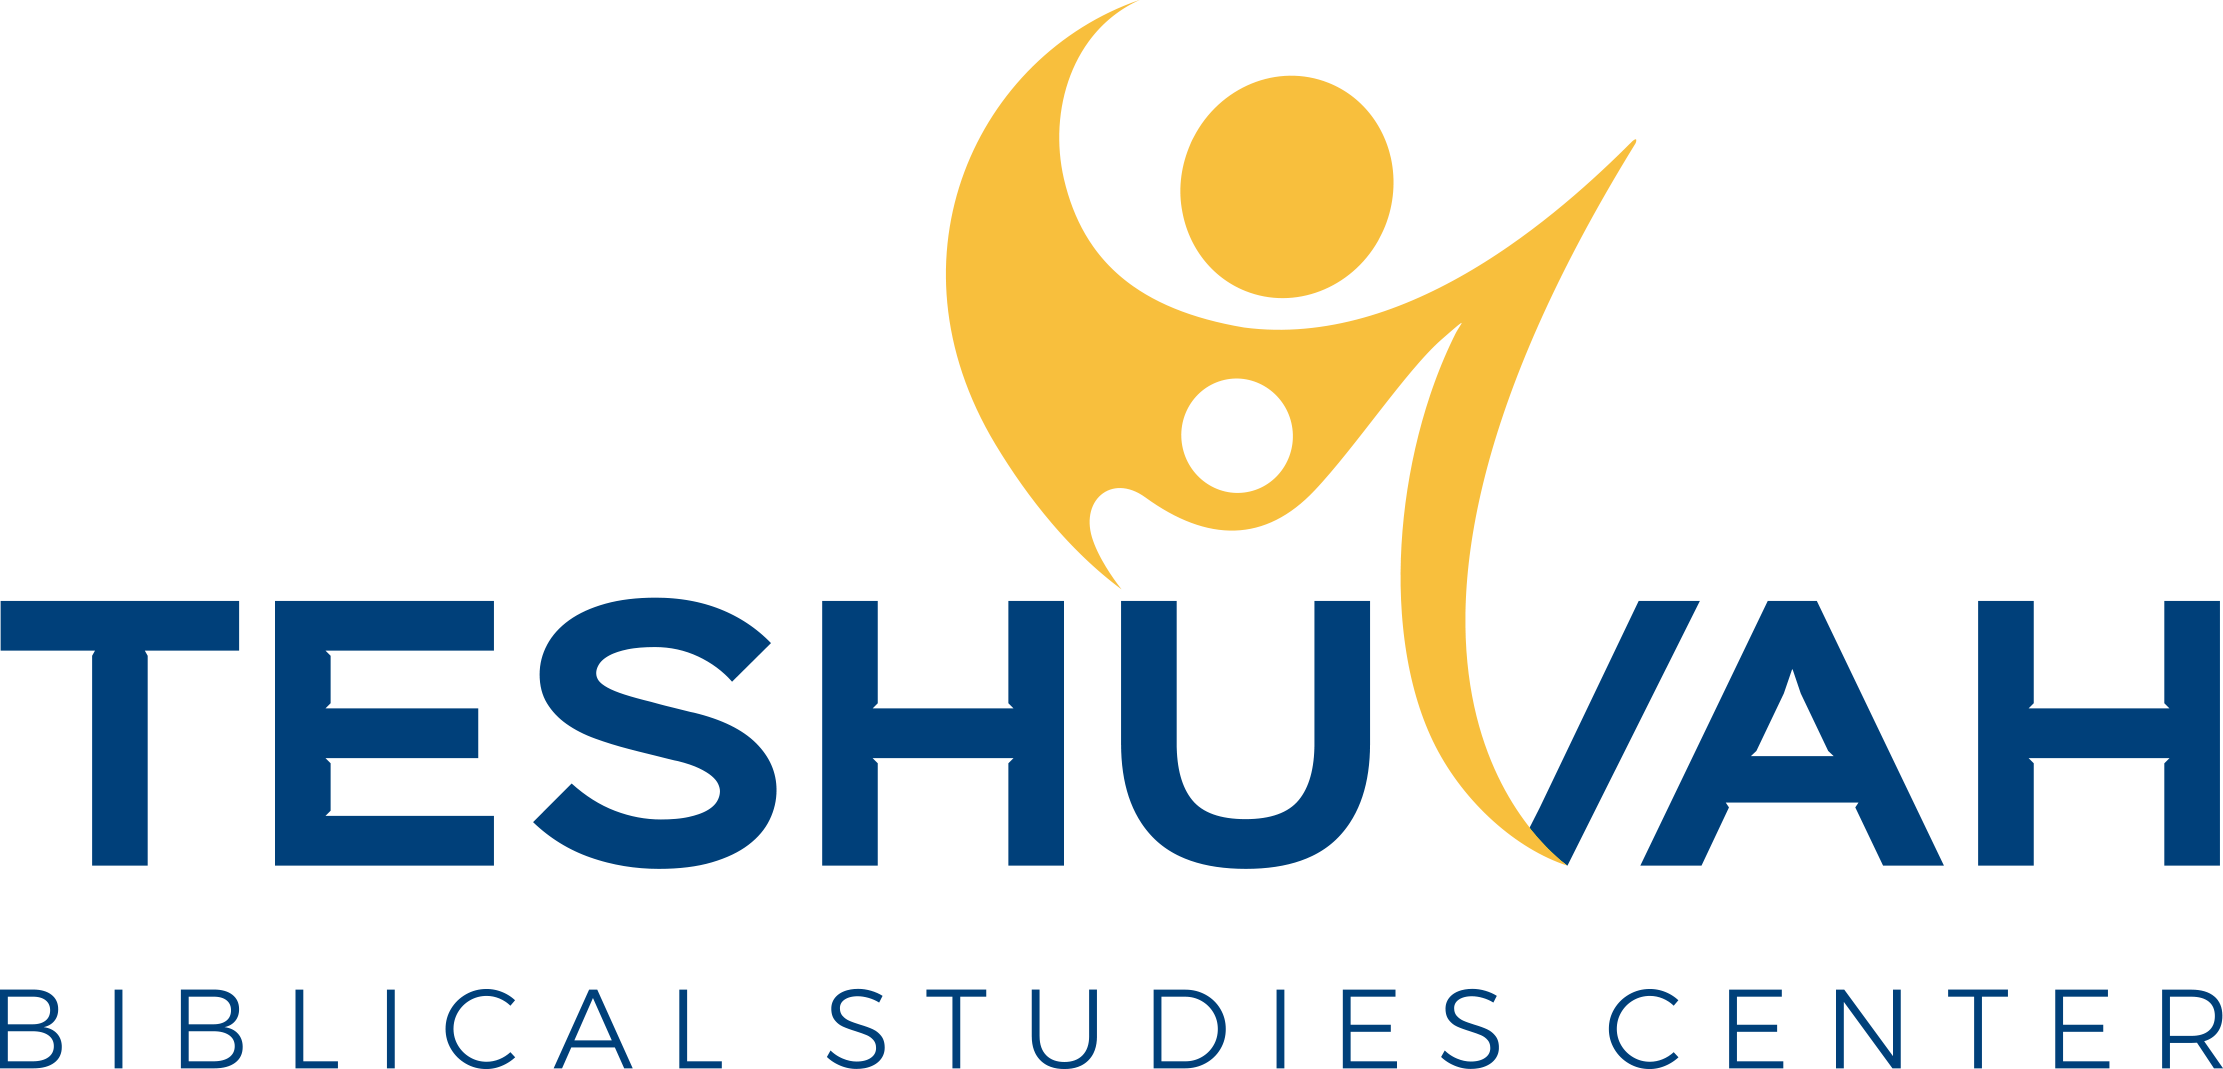 Teshuvah Biblical Studies Center